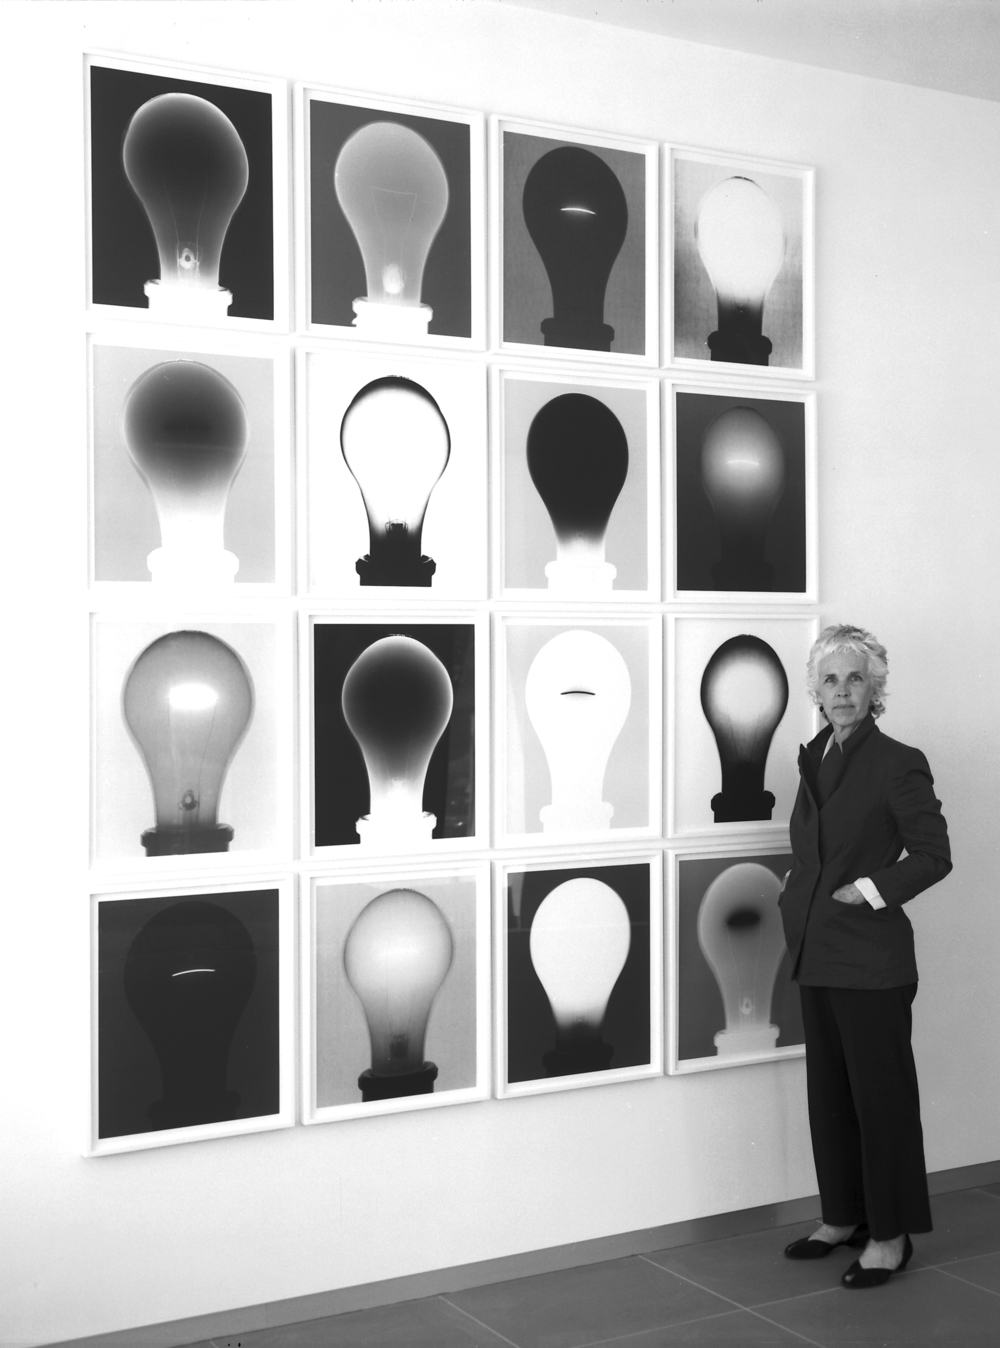 Amanda with One Bulb Grid r.jpg